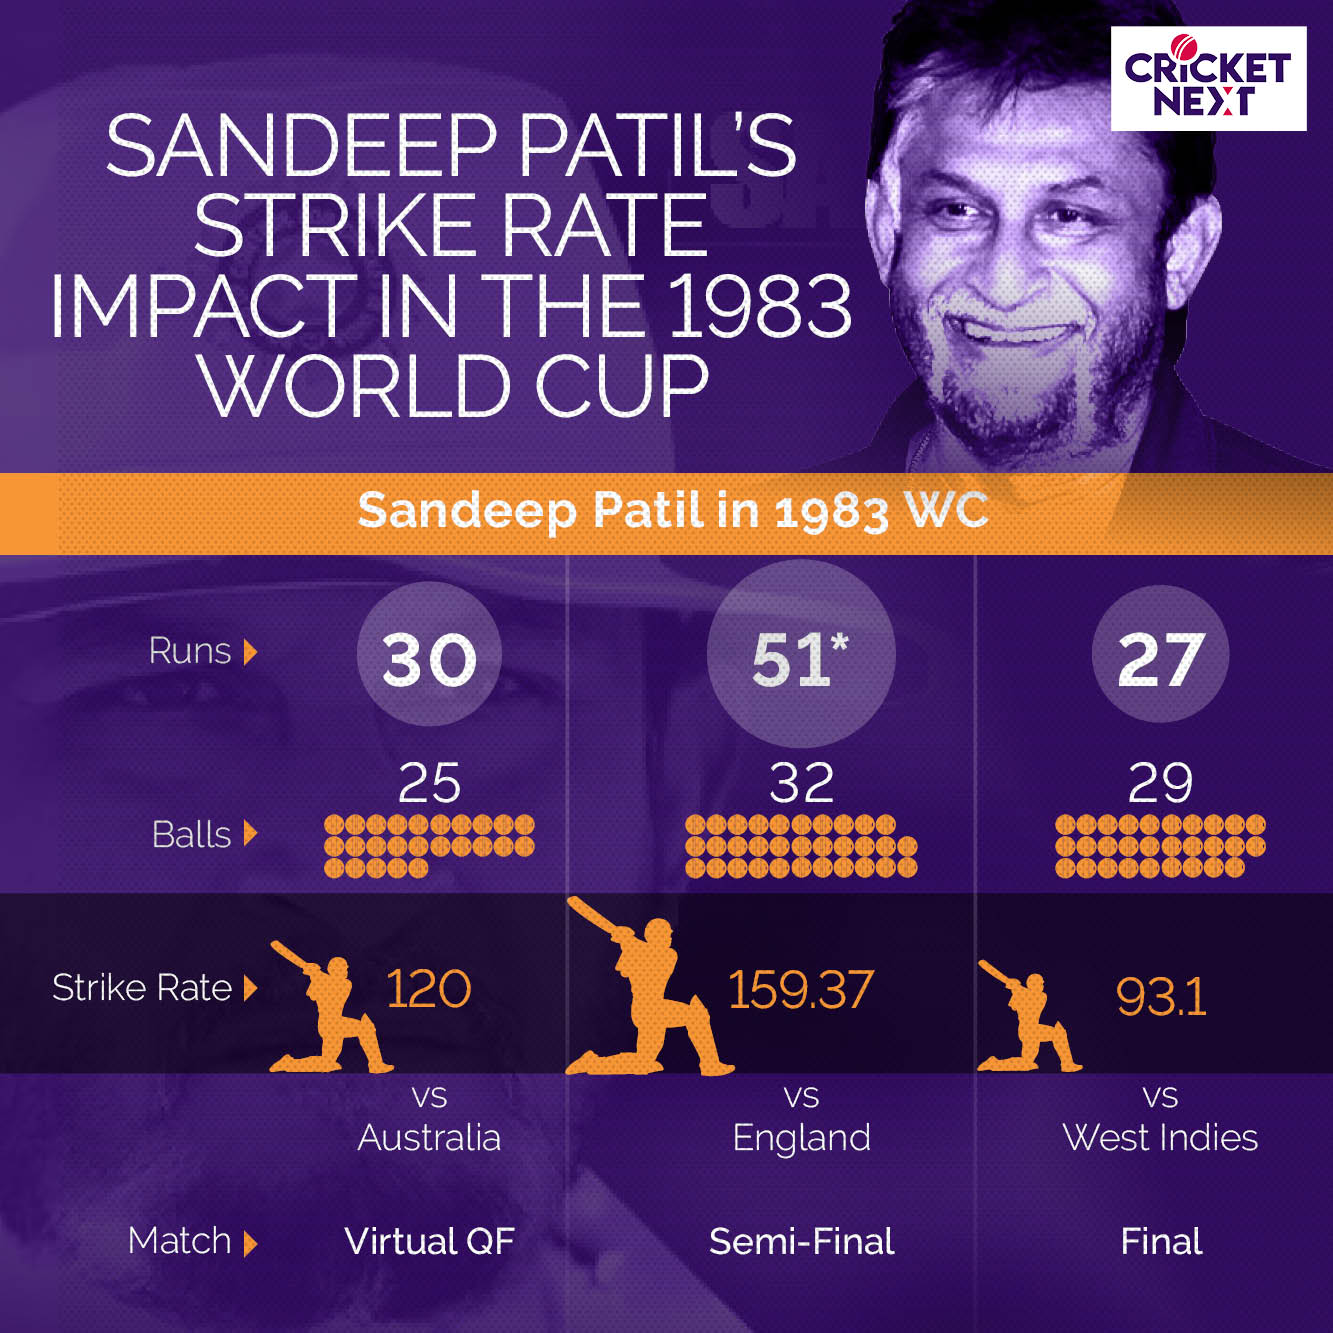 1983 WORLD CUP - INDIAN SUMMARY - Sanpdeep Patil